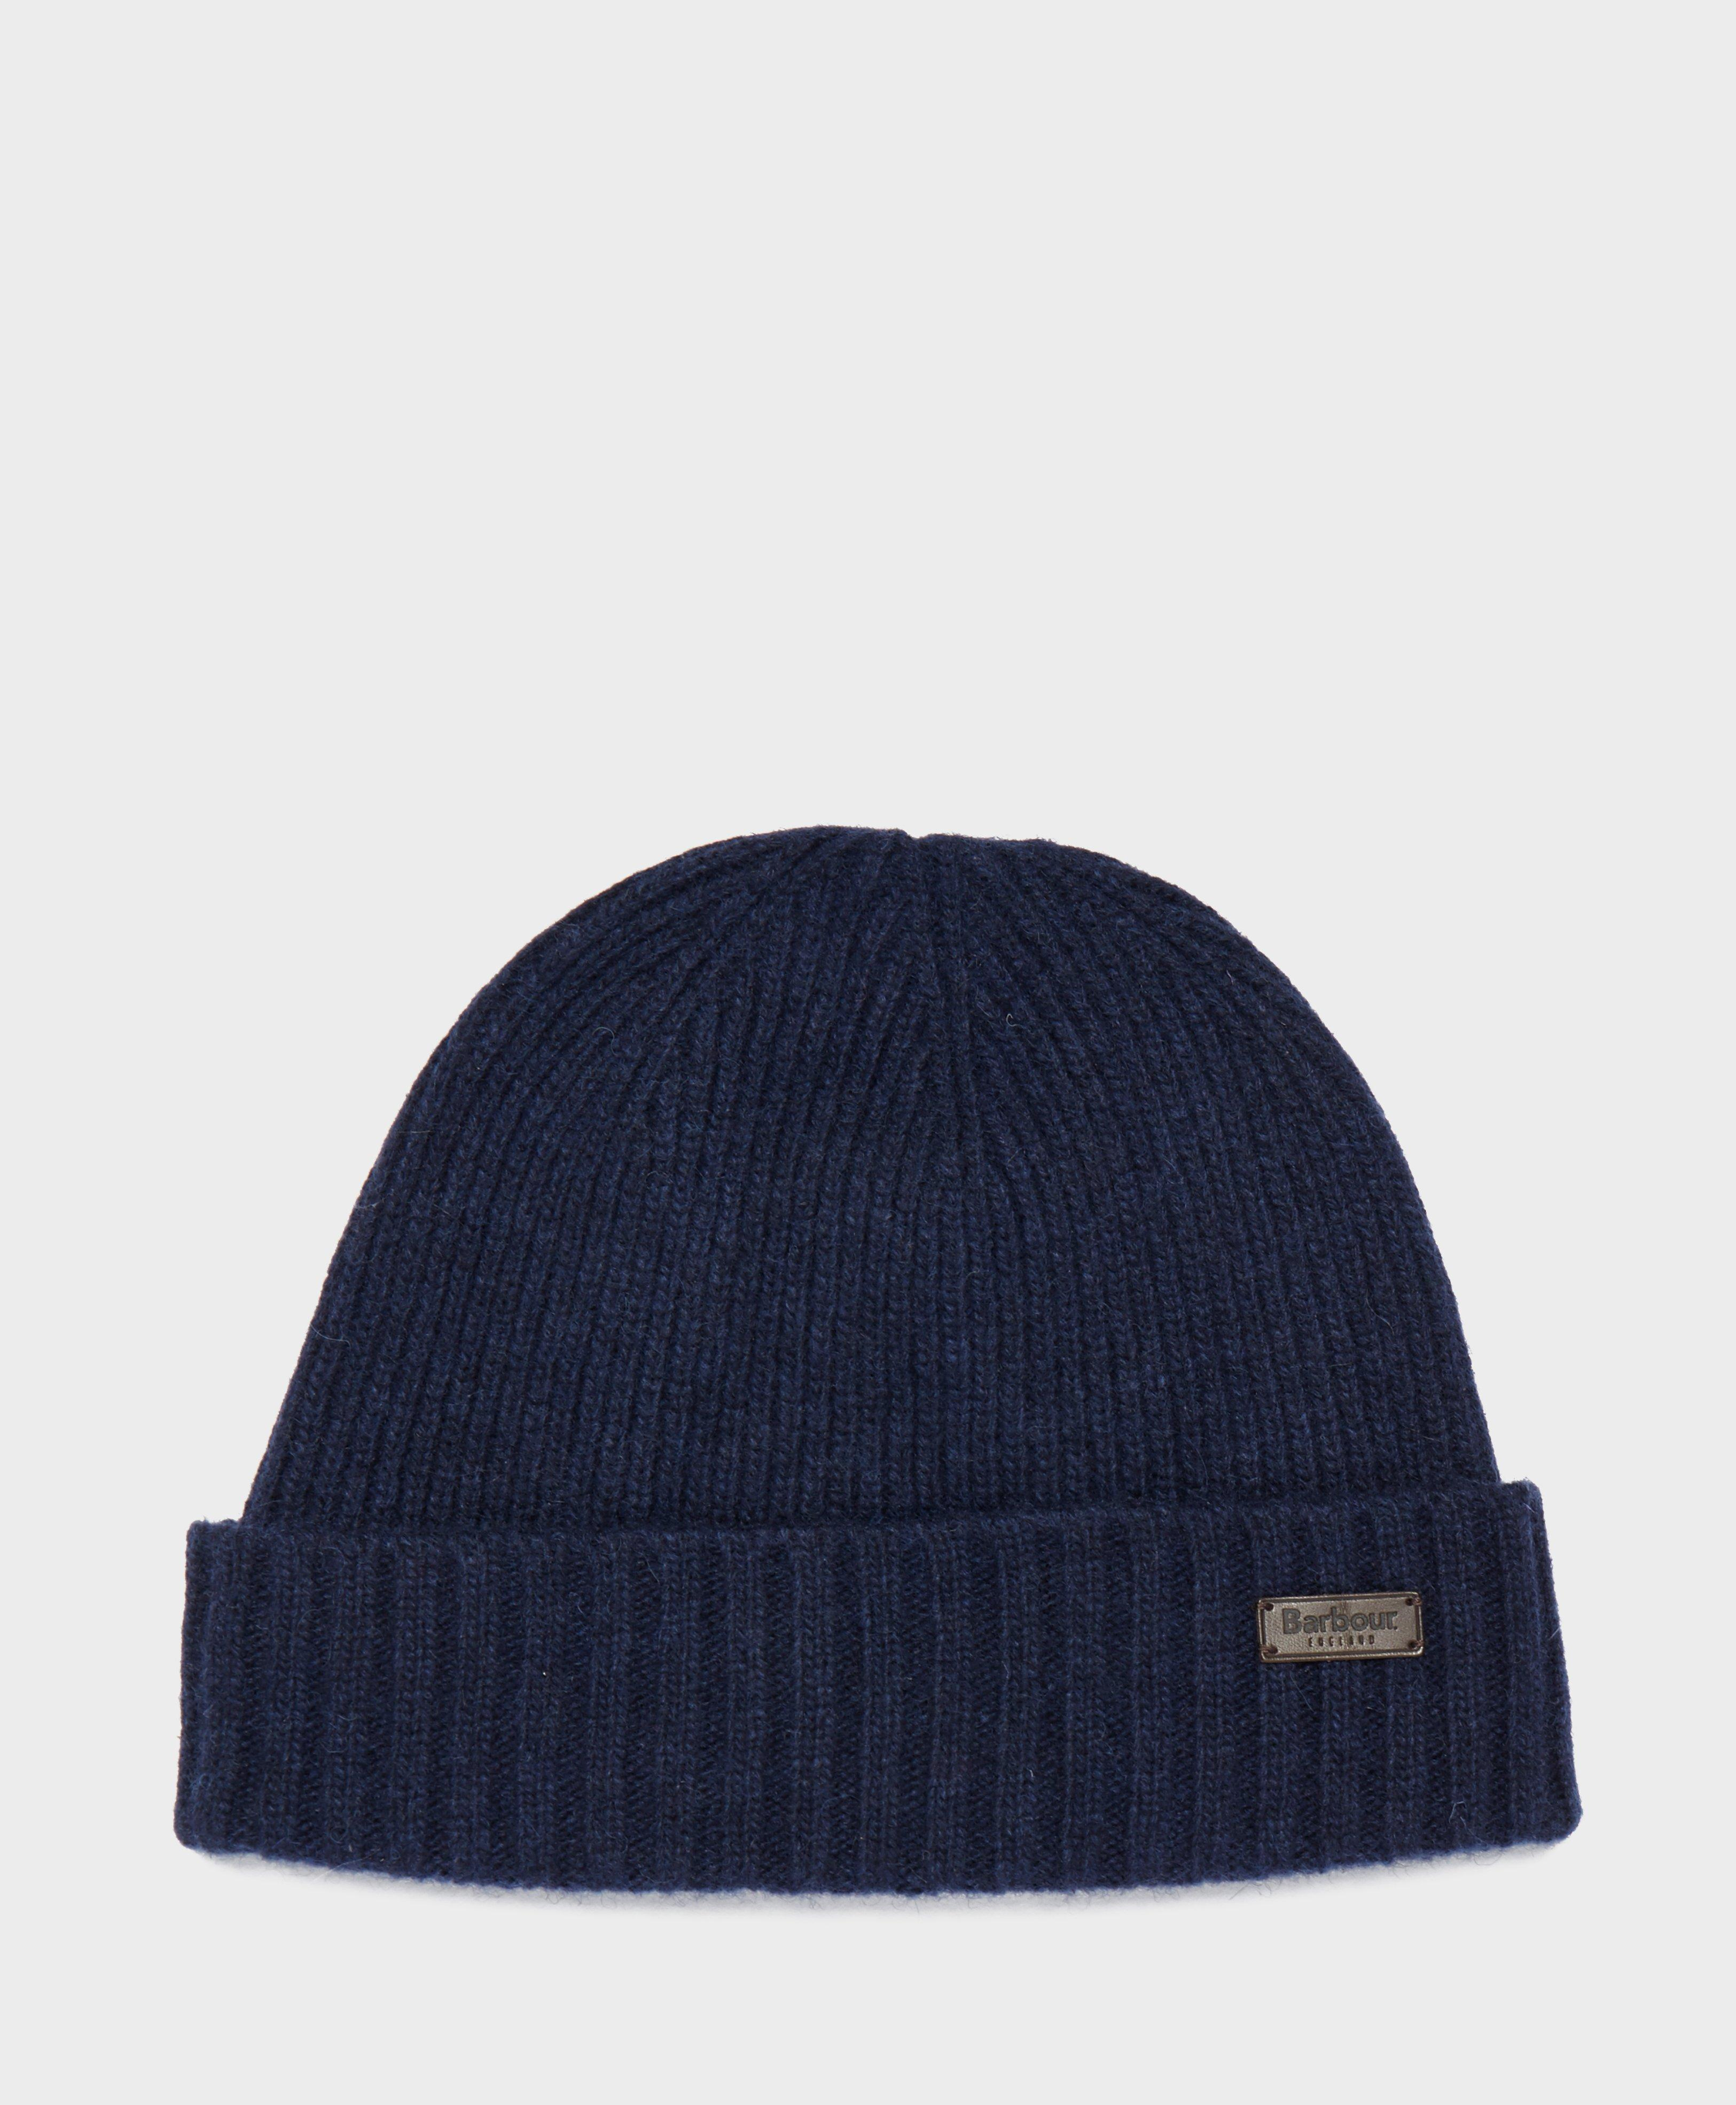 7c0c8be4f7f Lyst - Barbour Calton Beanie in Blue for Men